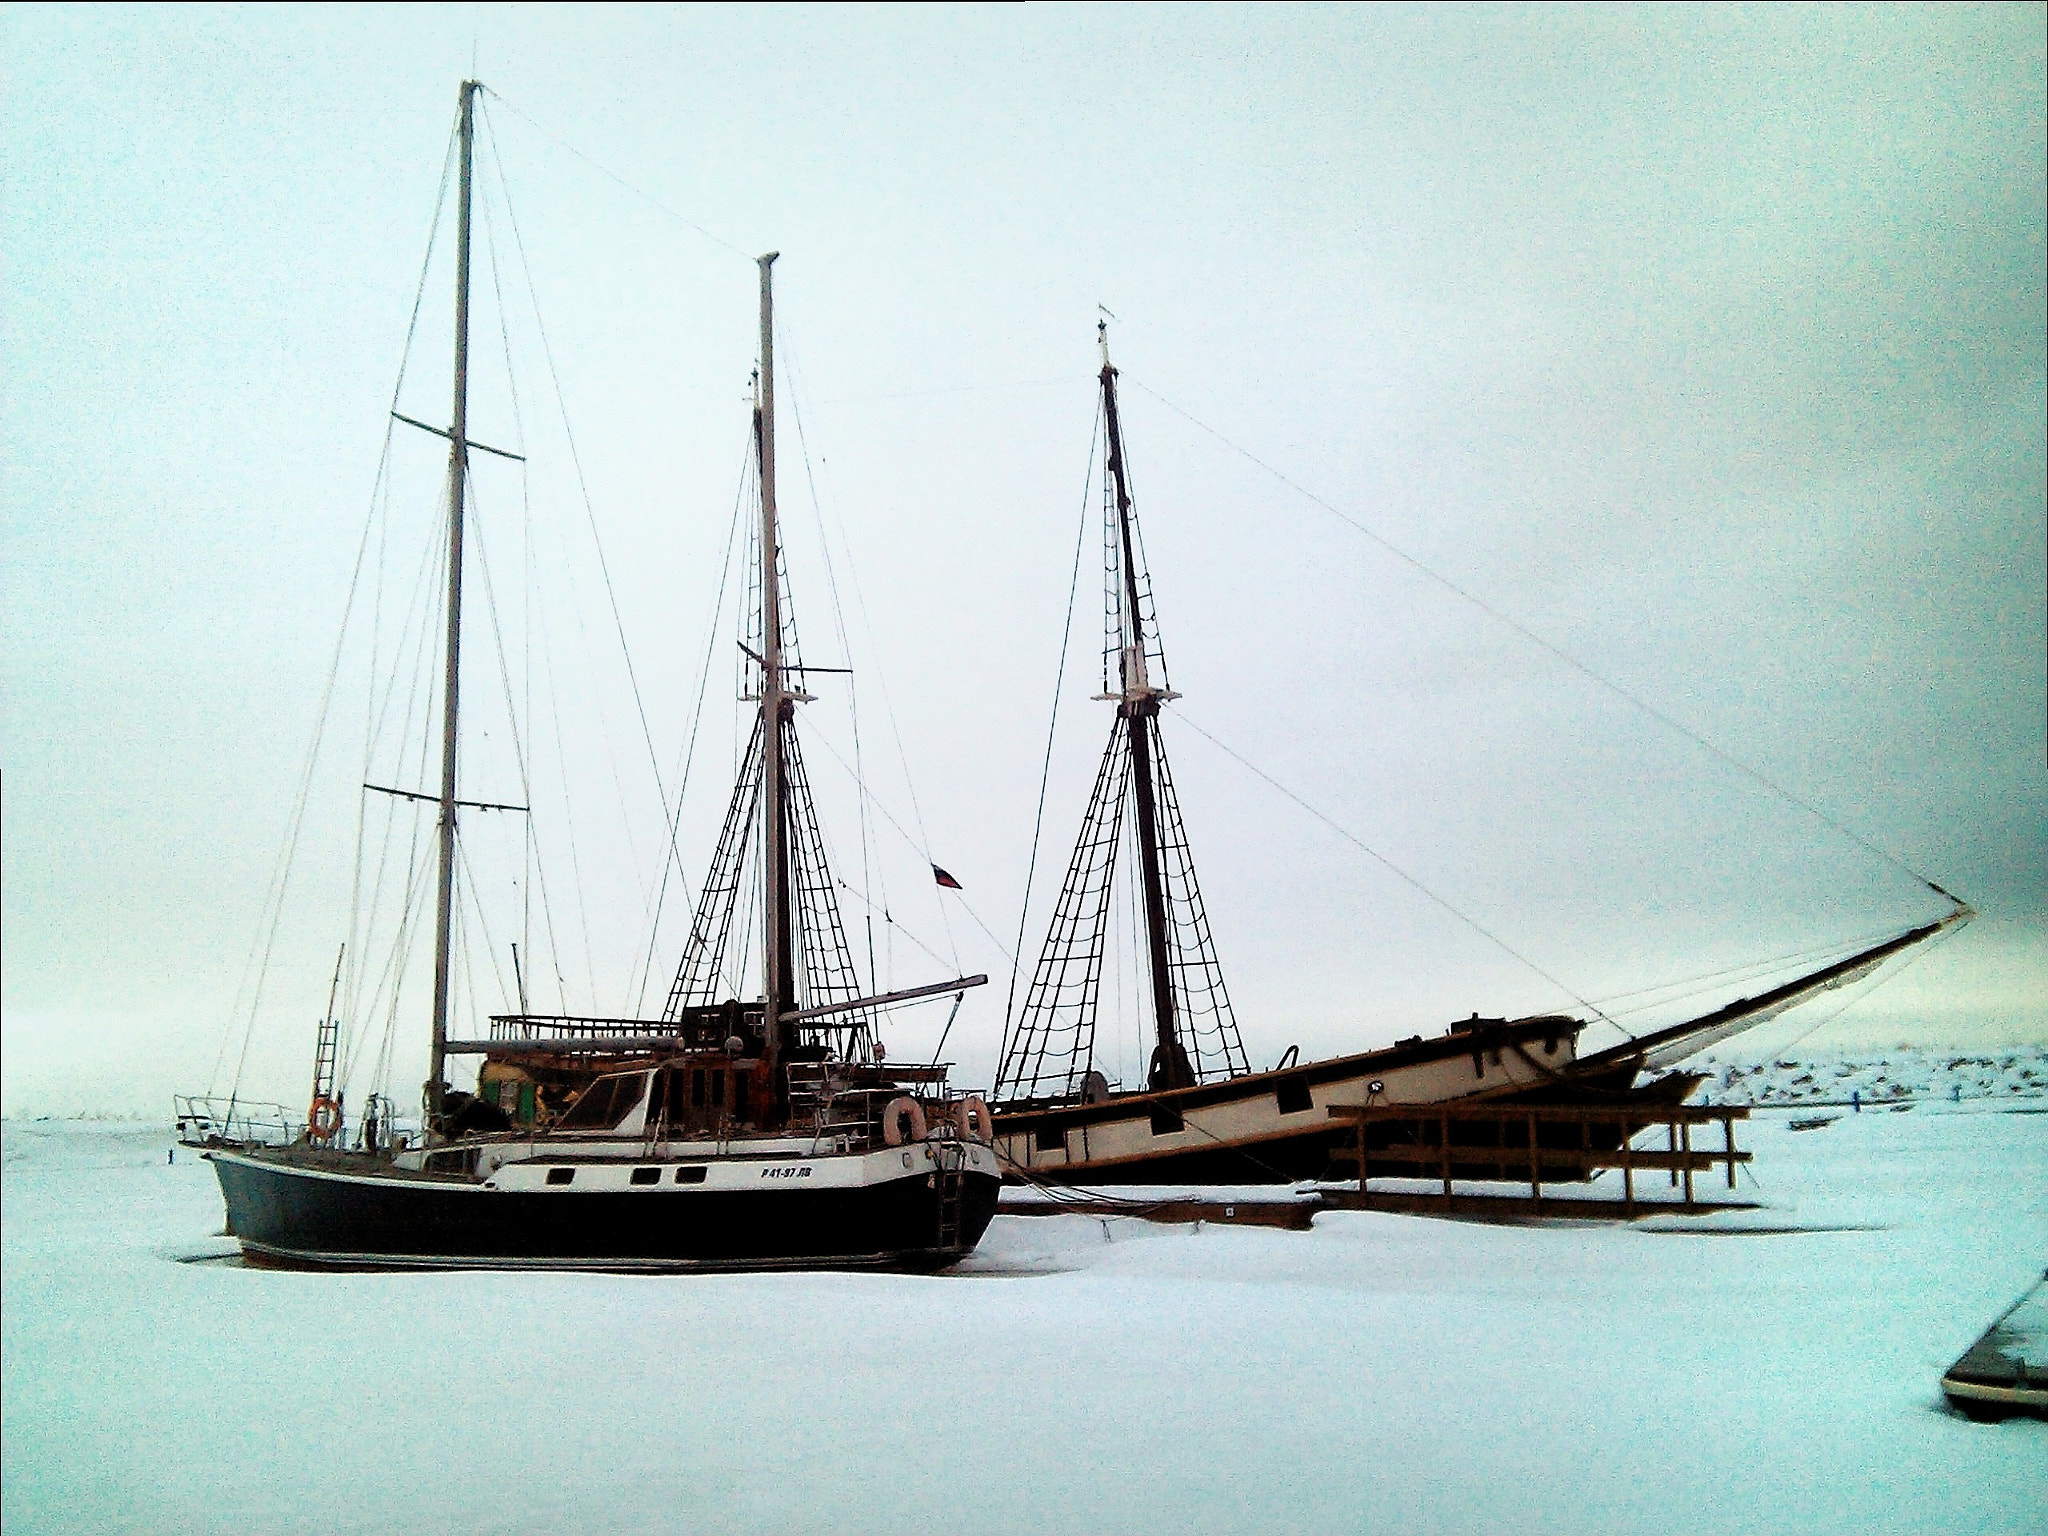 Photograph Ice ship by Alex Nordwey on 500px